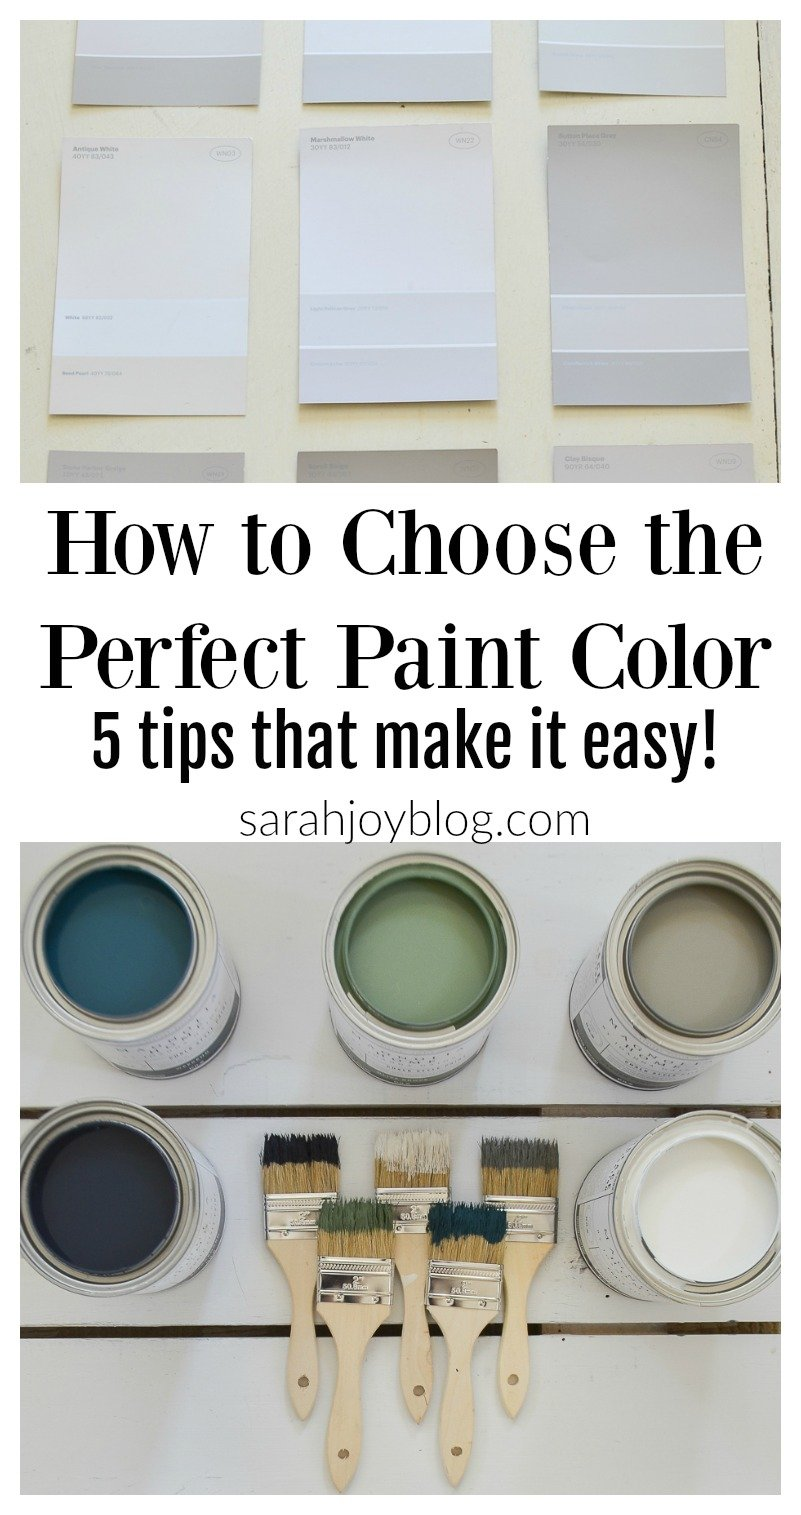 How to Choose the Perfect Paint Color. 5 tips that make it easy!